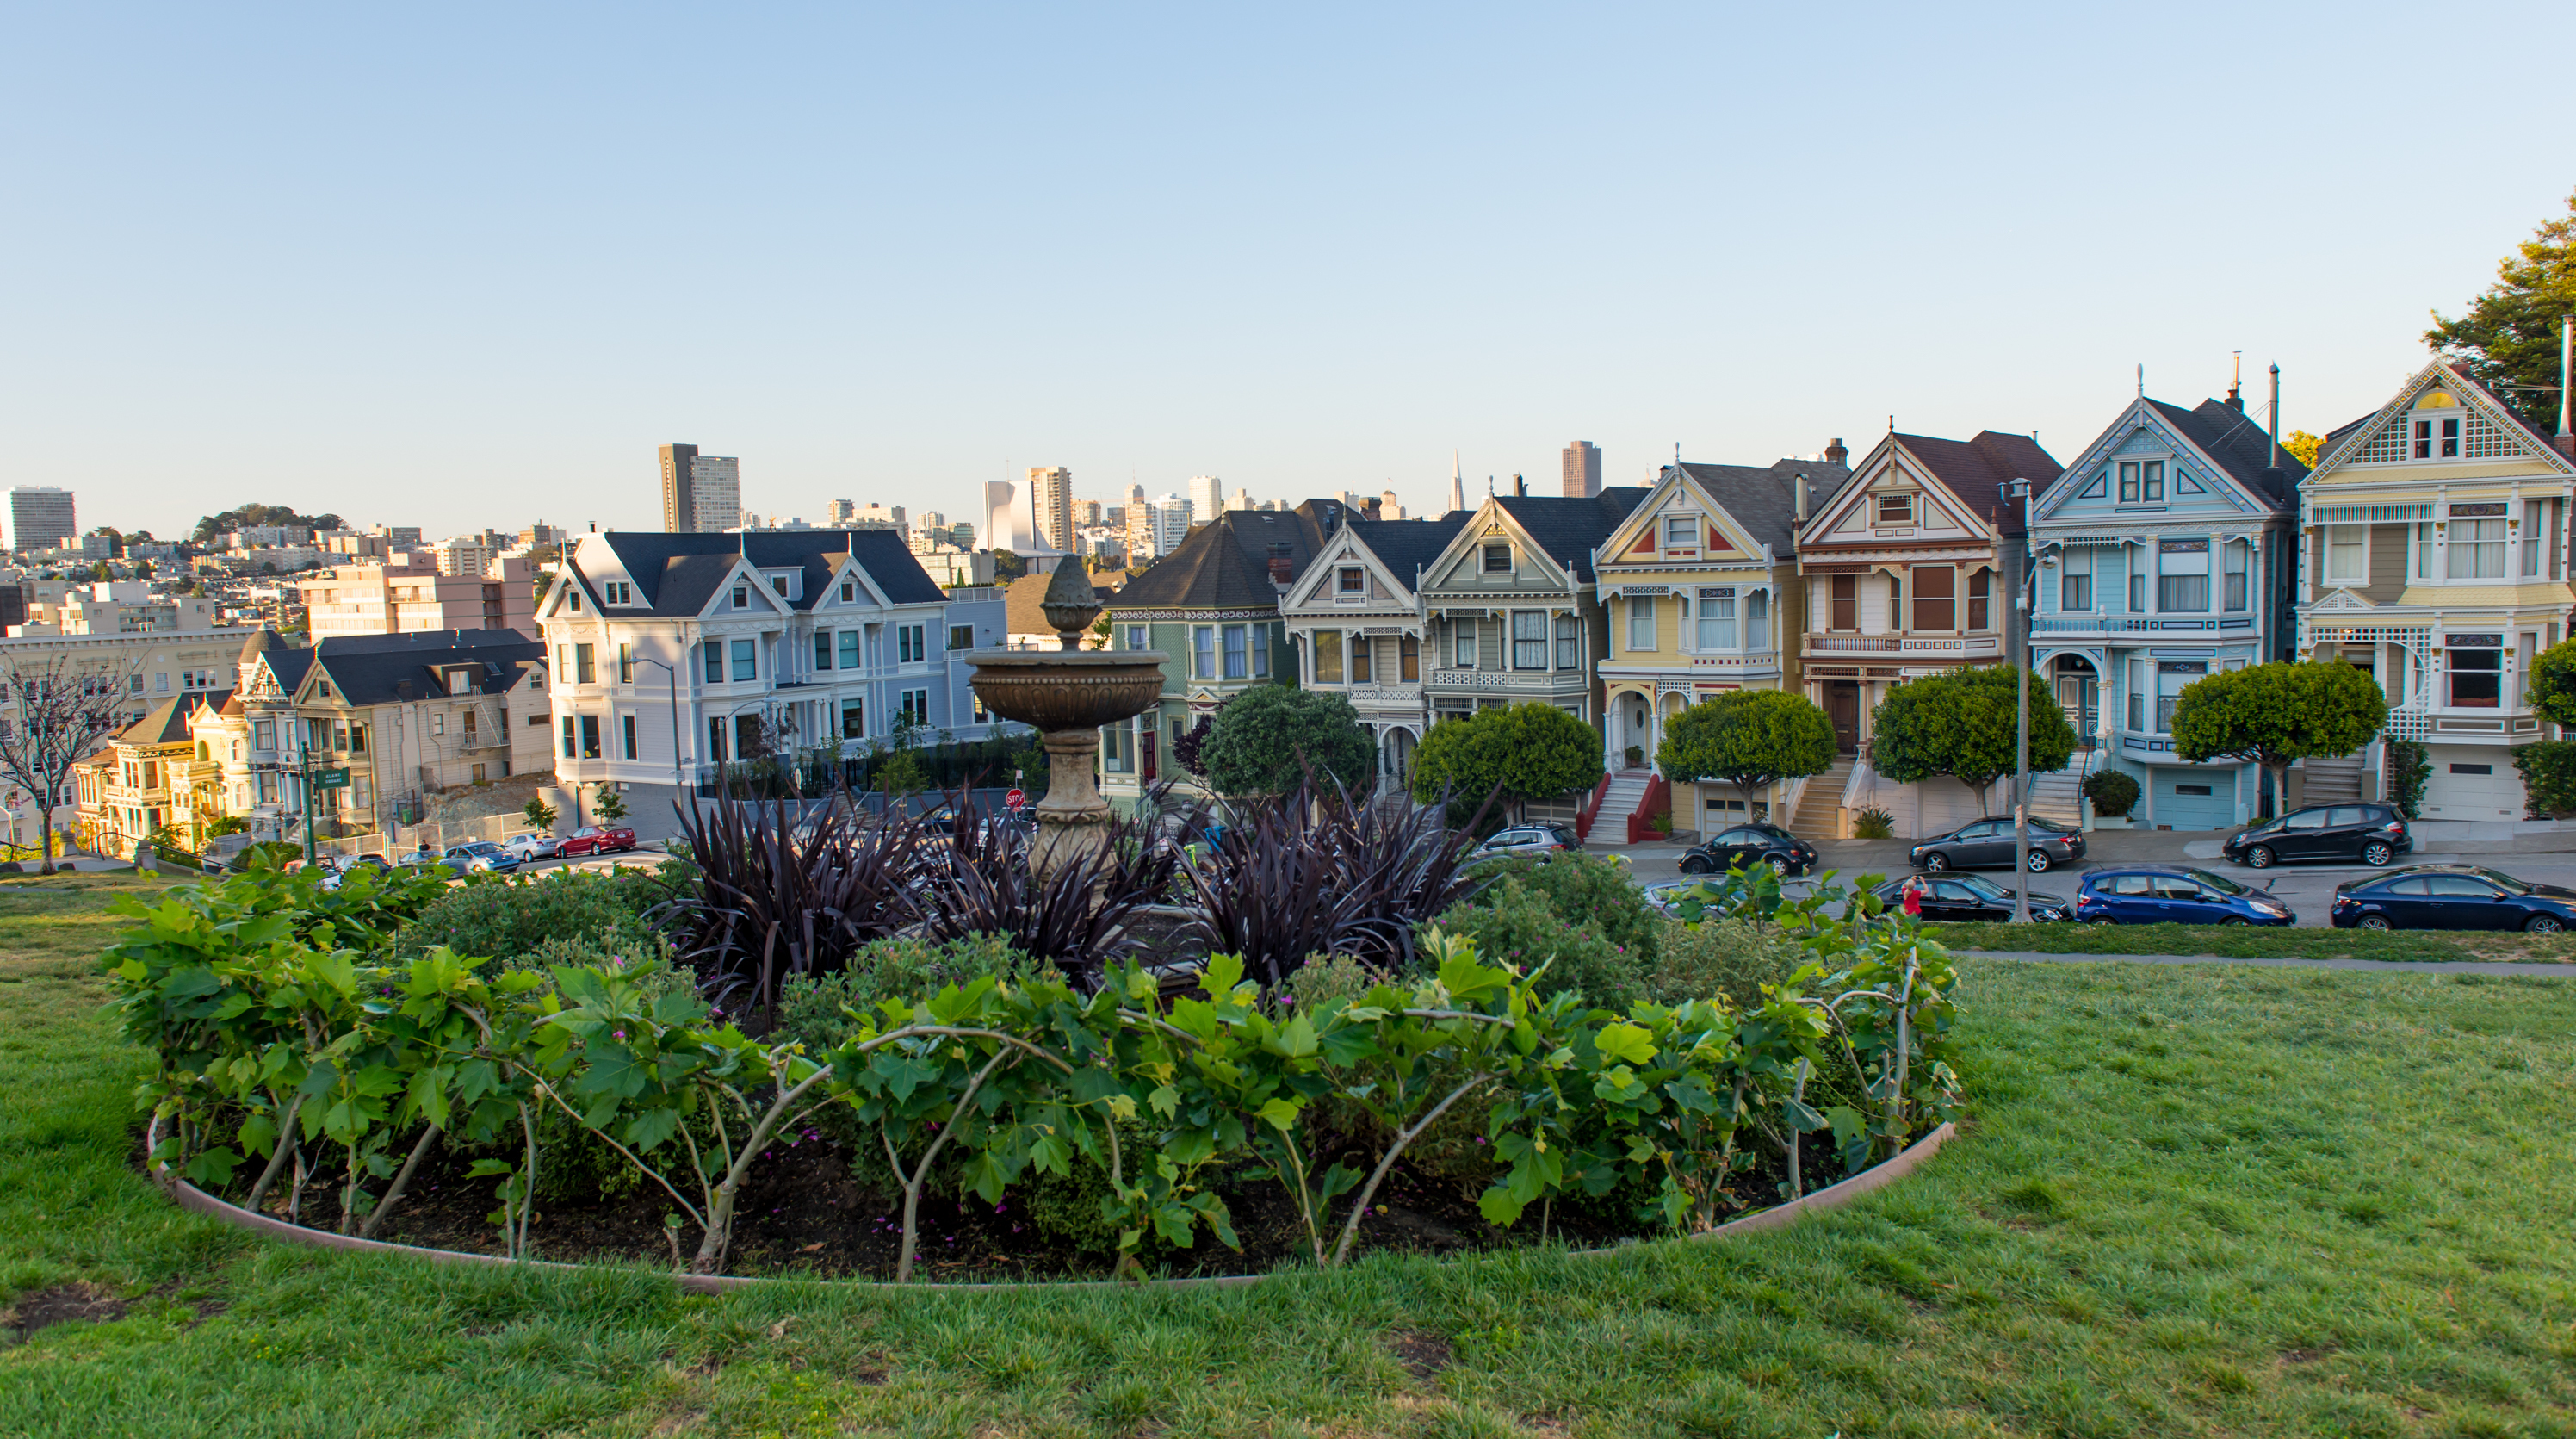 A circular planter in Alamo Square with paintd Victorians across the street.